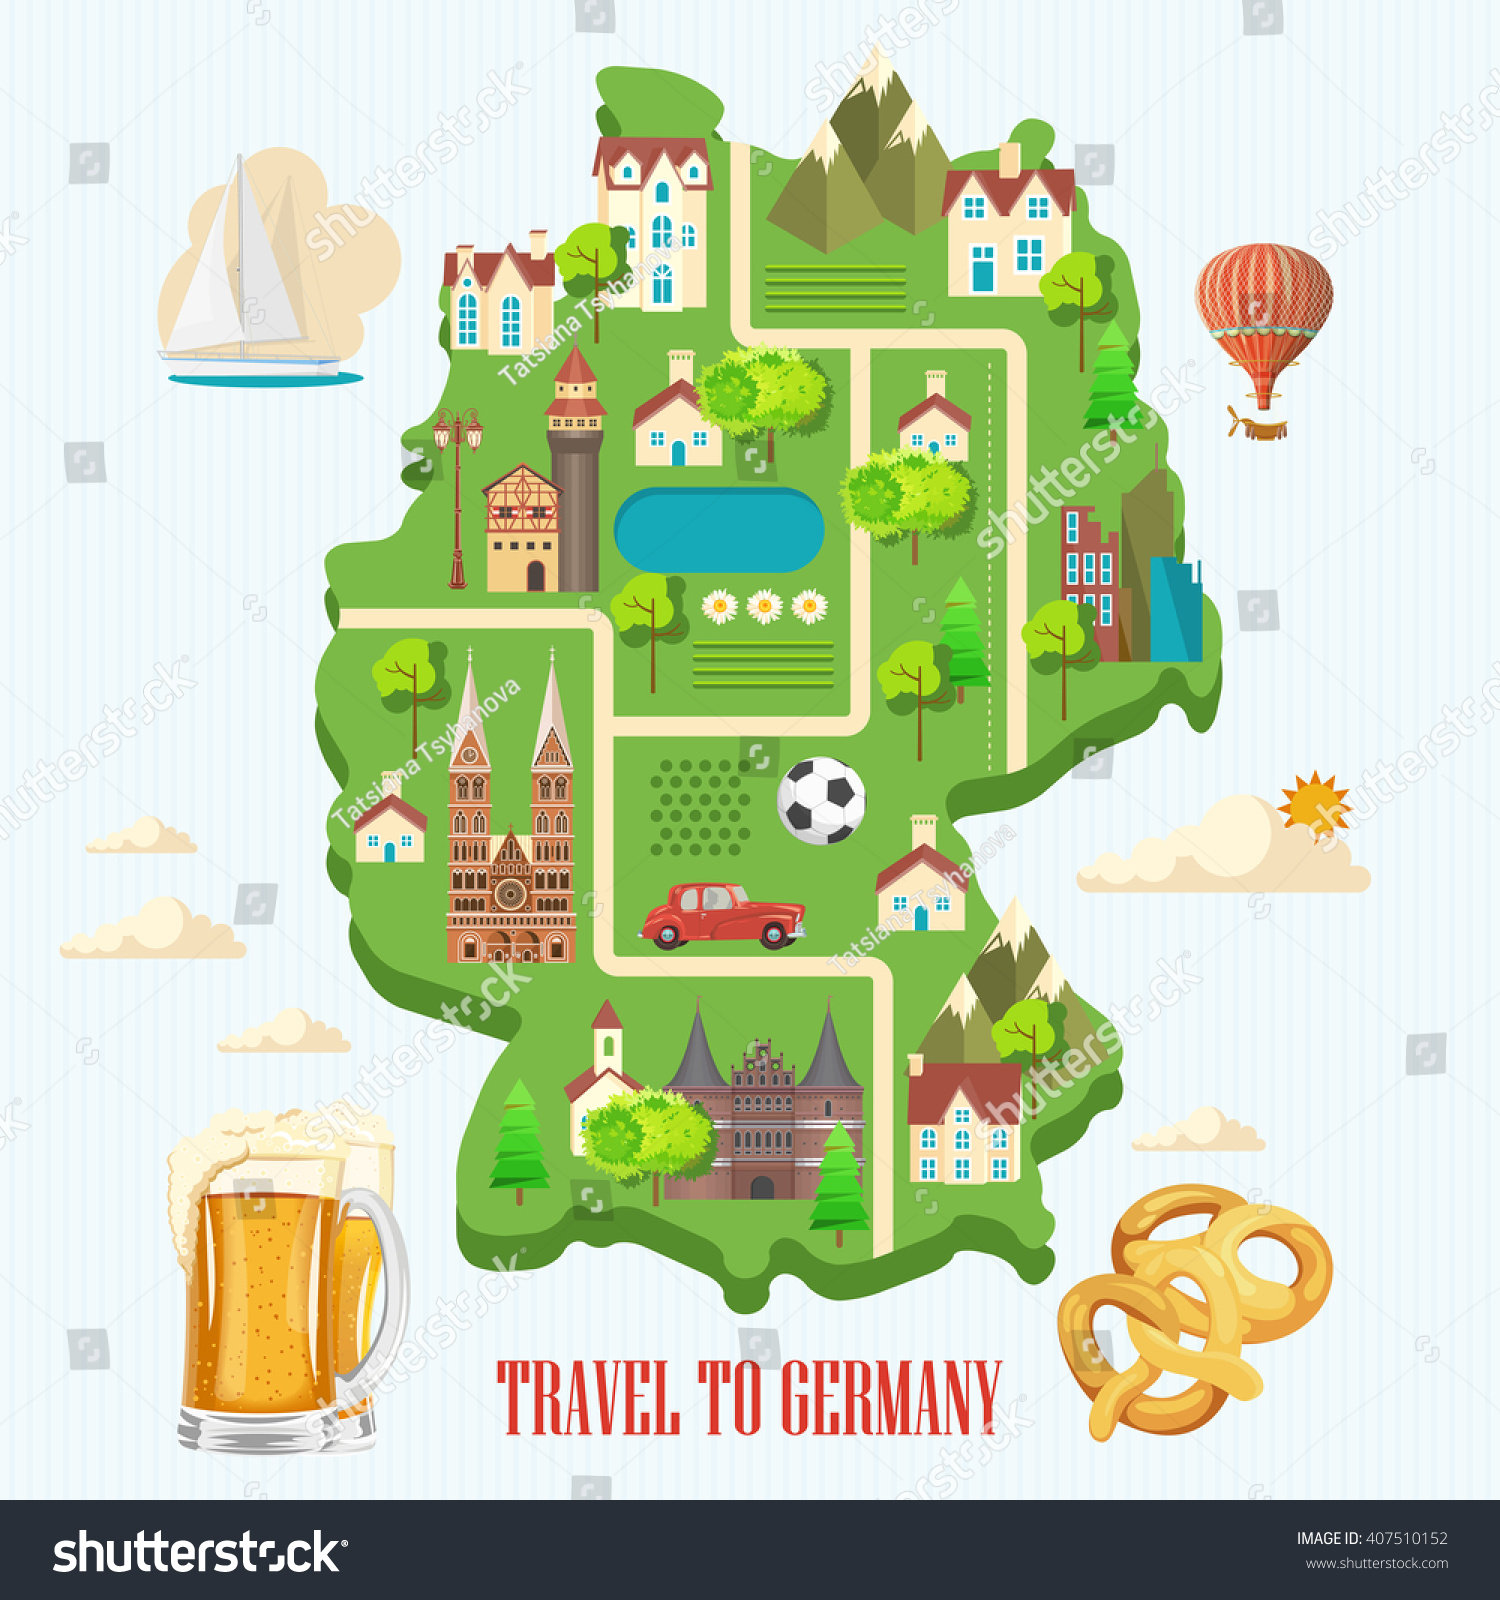 I Want To Visit Germany In German: Germany Travel Poster. Trip Architecture Concept